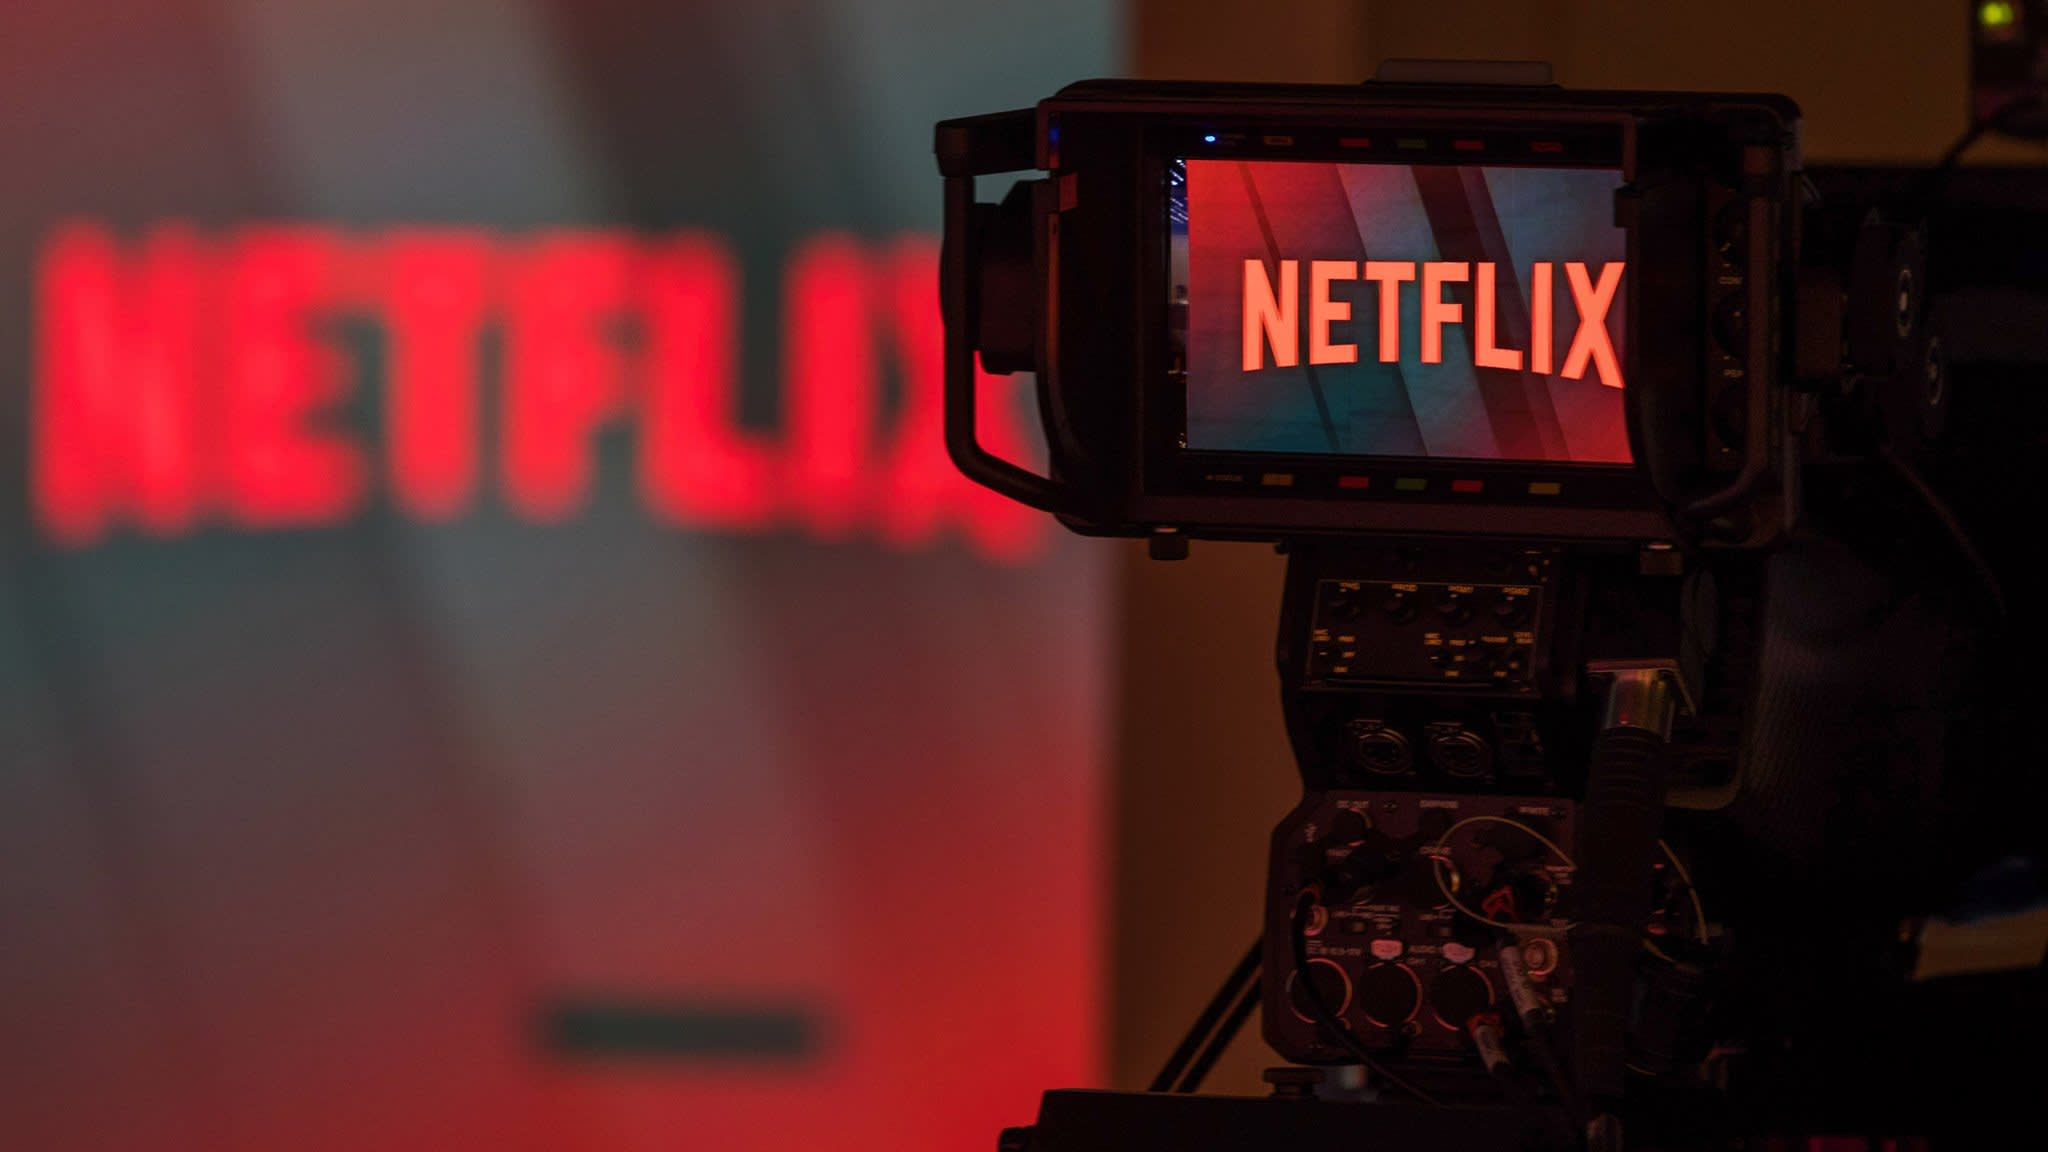 Netflix to hike prices by up to 18%